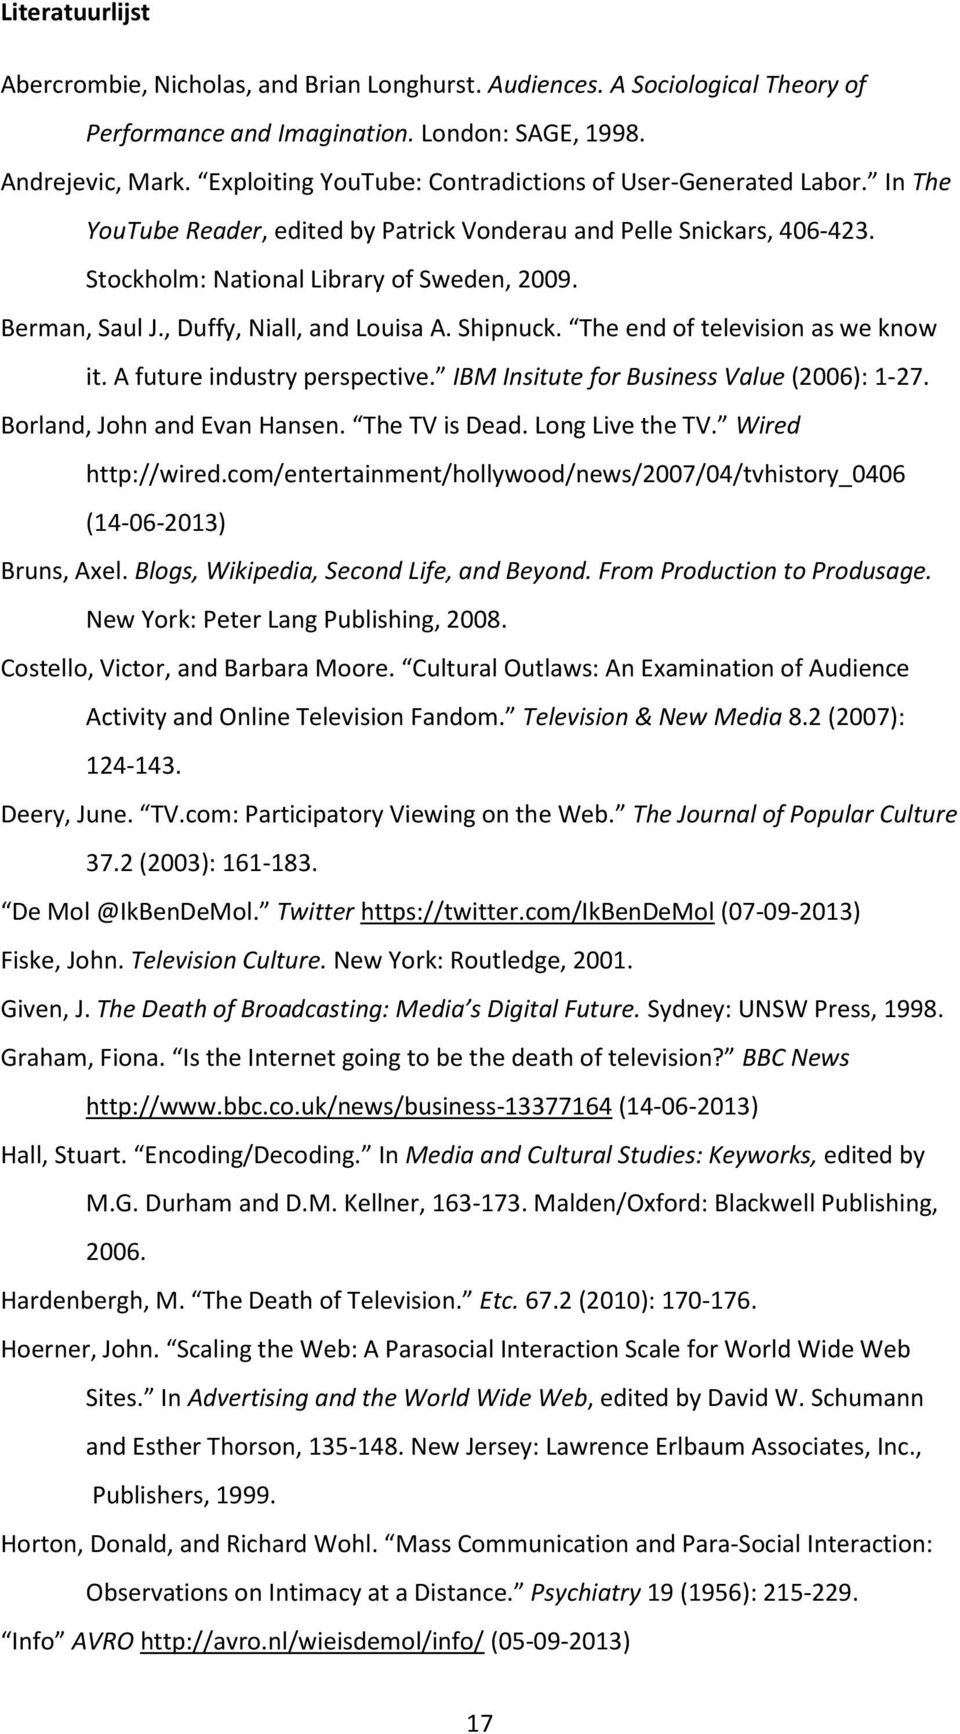 , Duffy, Niall, and Louisa A. Shipnuck. The end of television as we know it. A future industry perspective. IBM Insitute for Business Value (2006): 1-27. Borland, John and Evan Hansen. The TV is Dead.